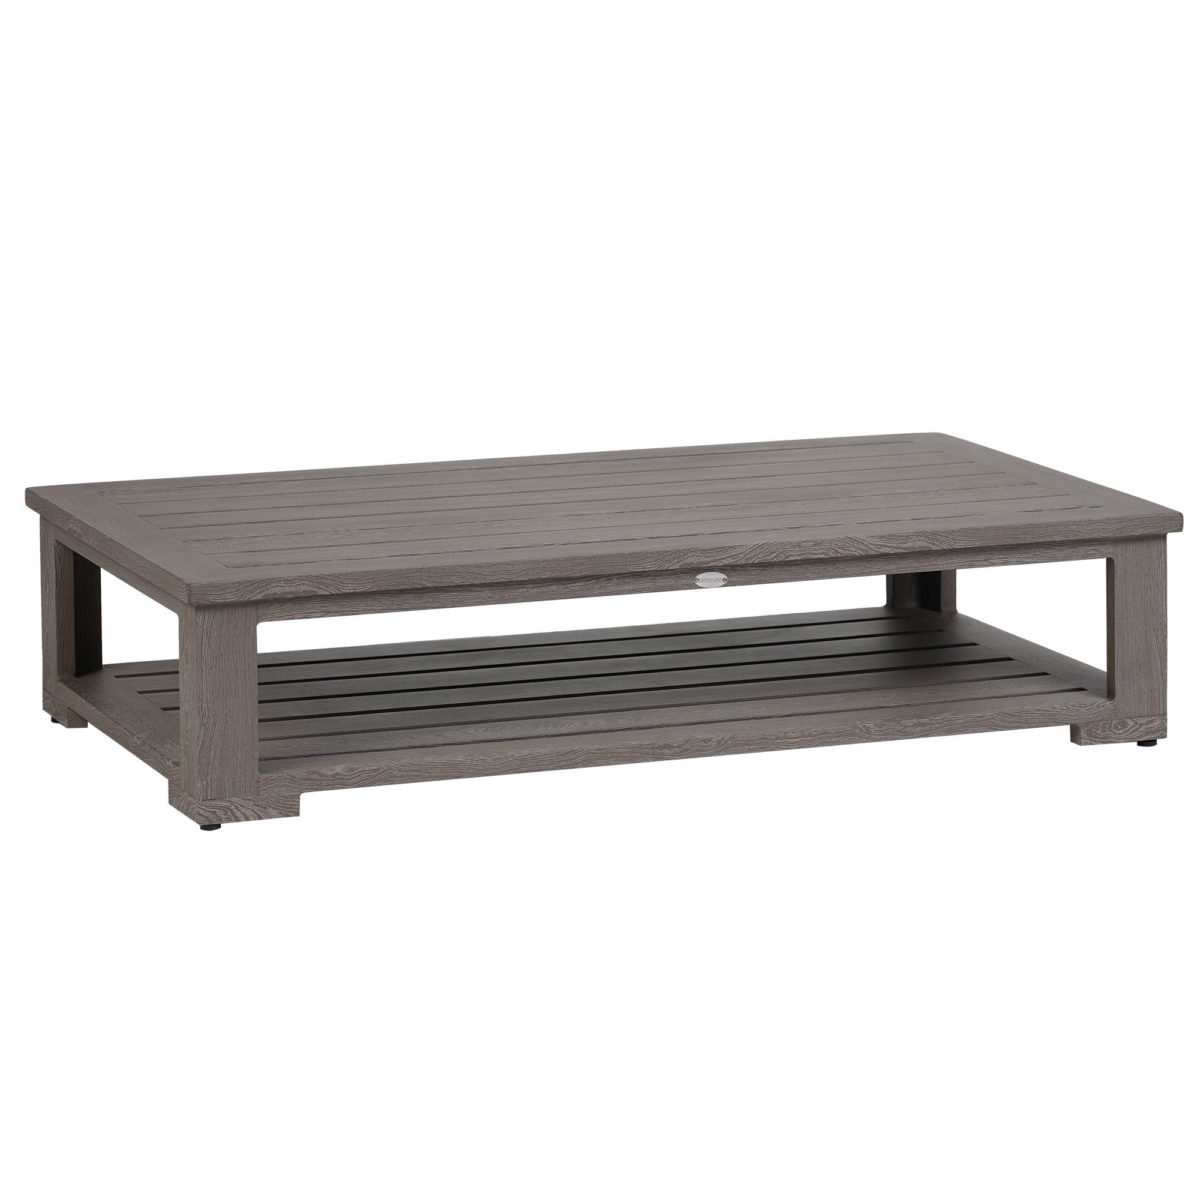 The Cubo coffee table in a pearl grey metal finish.